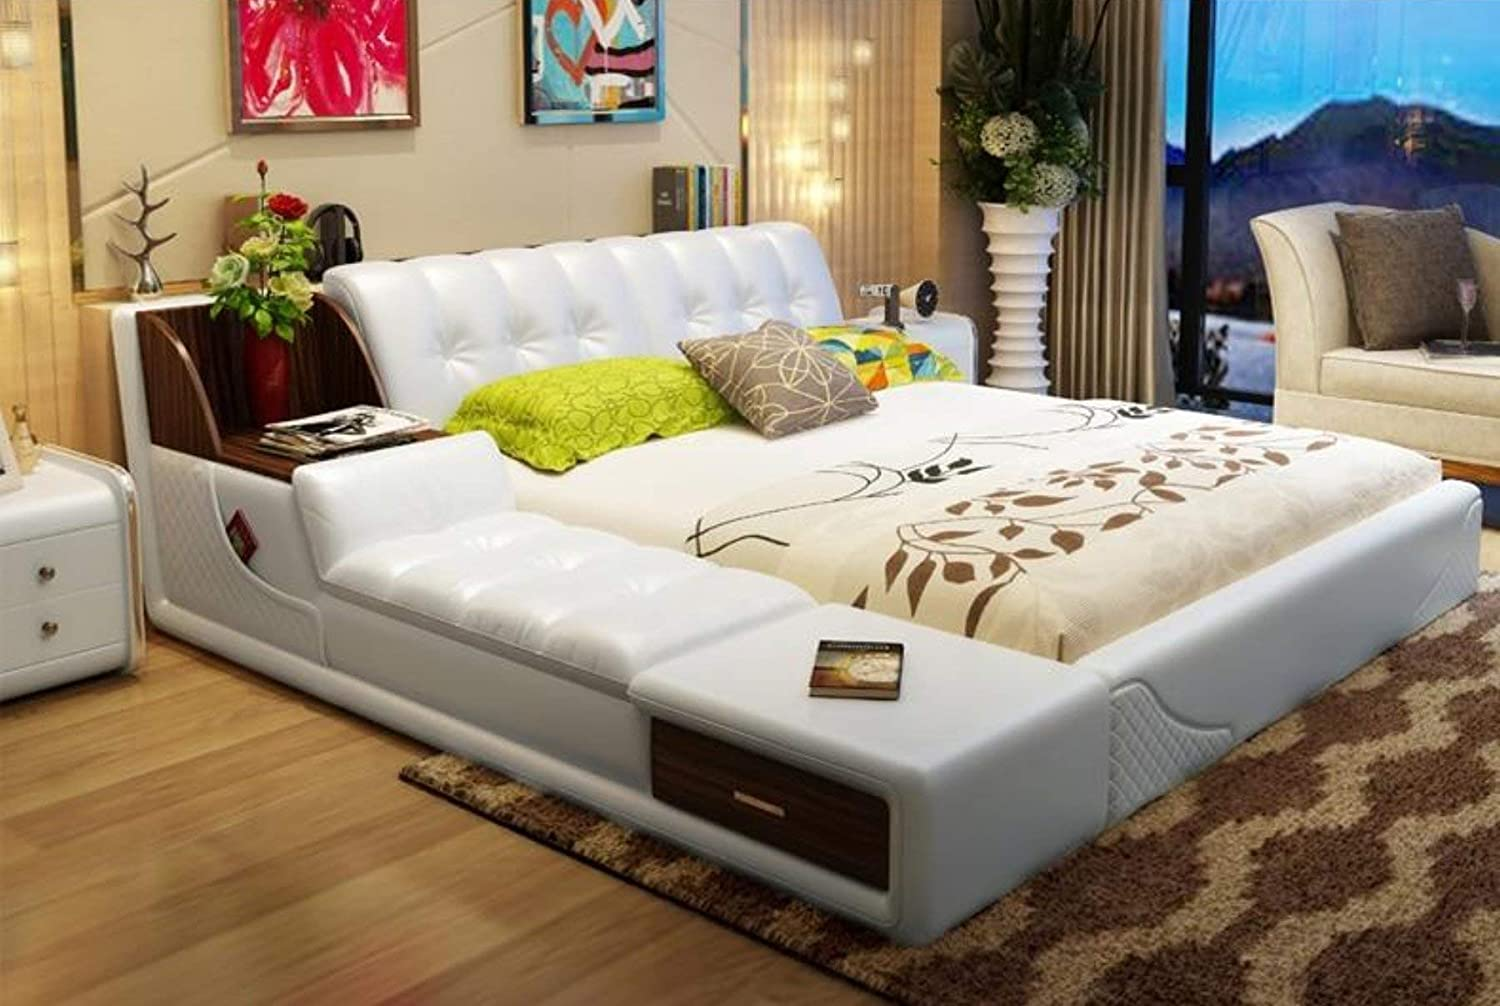 Amazon.com: My Aashis Soft Beds with Storage Home Bedroom